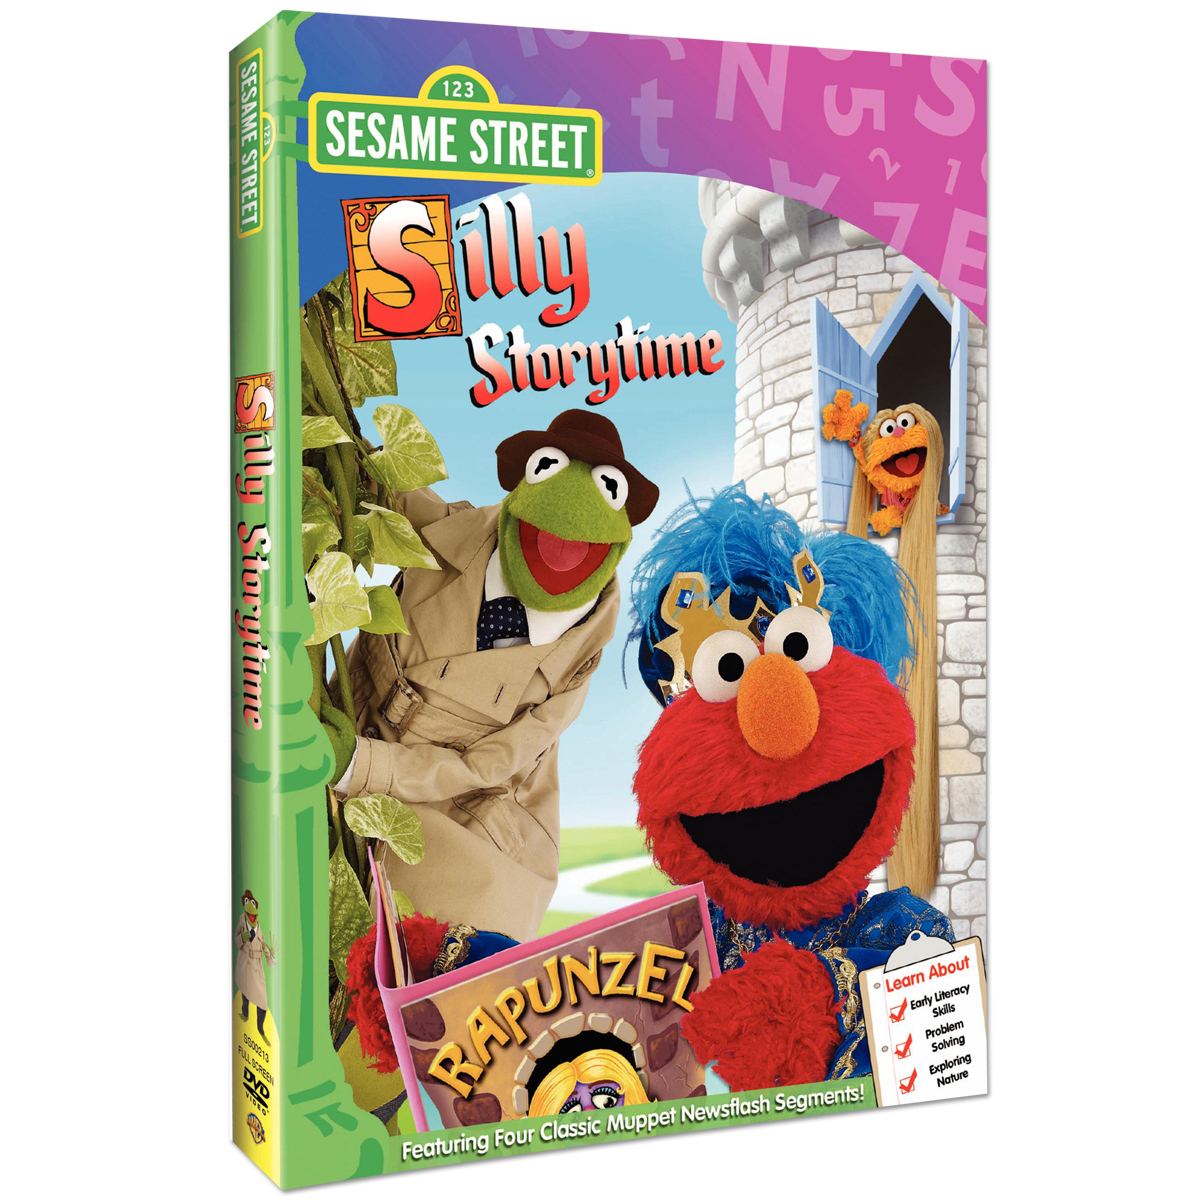 'Sesame Street: Silly Story Time' DVD